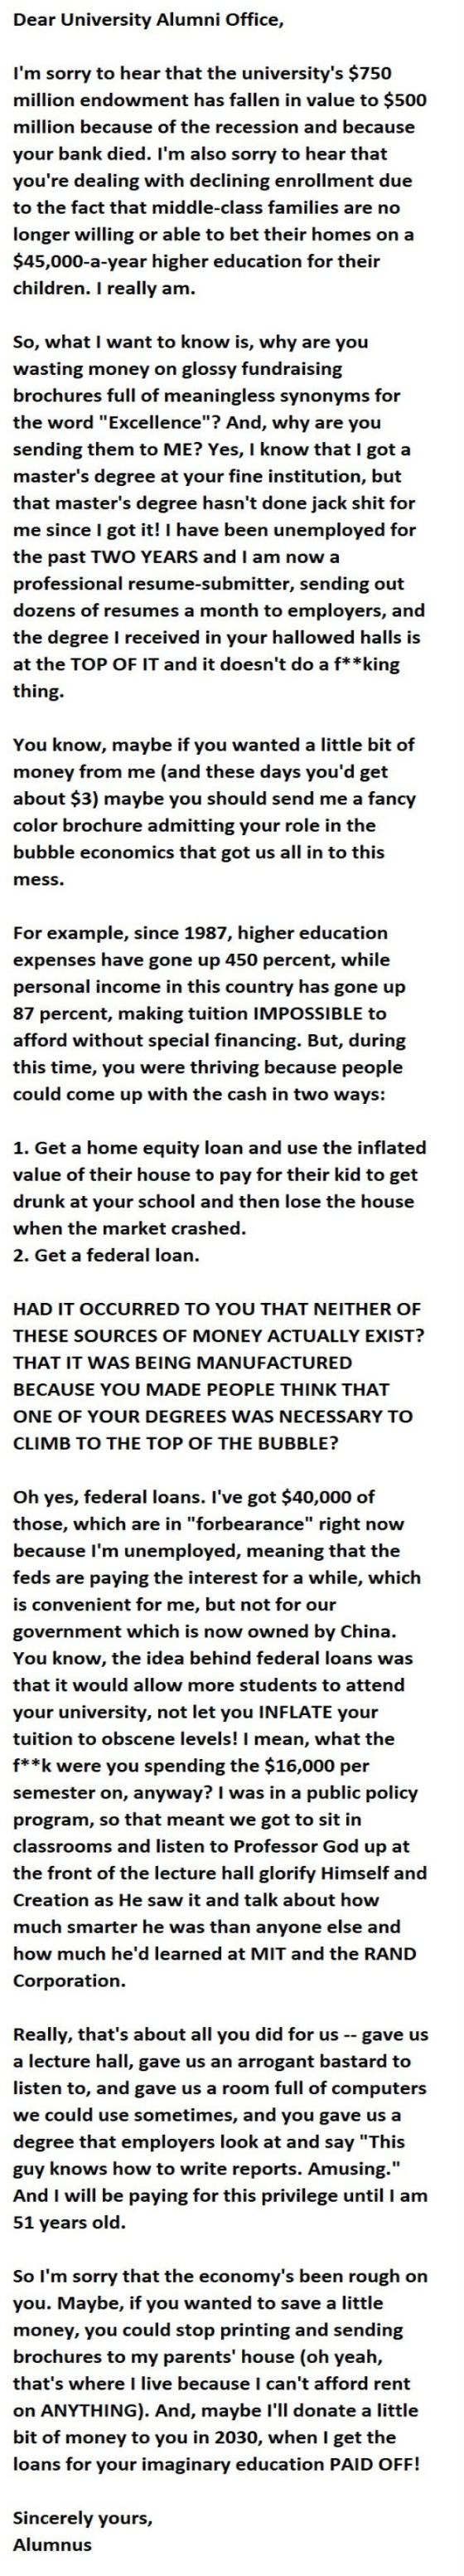 Angry grad letter